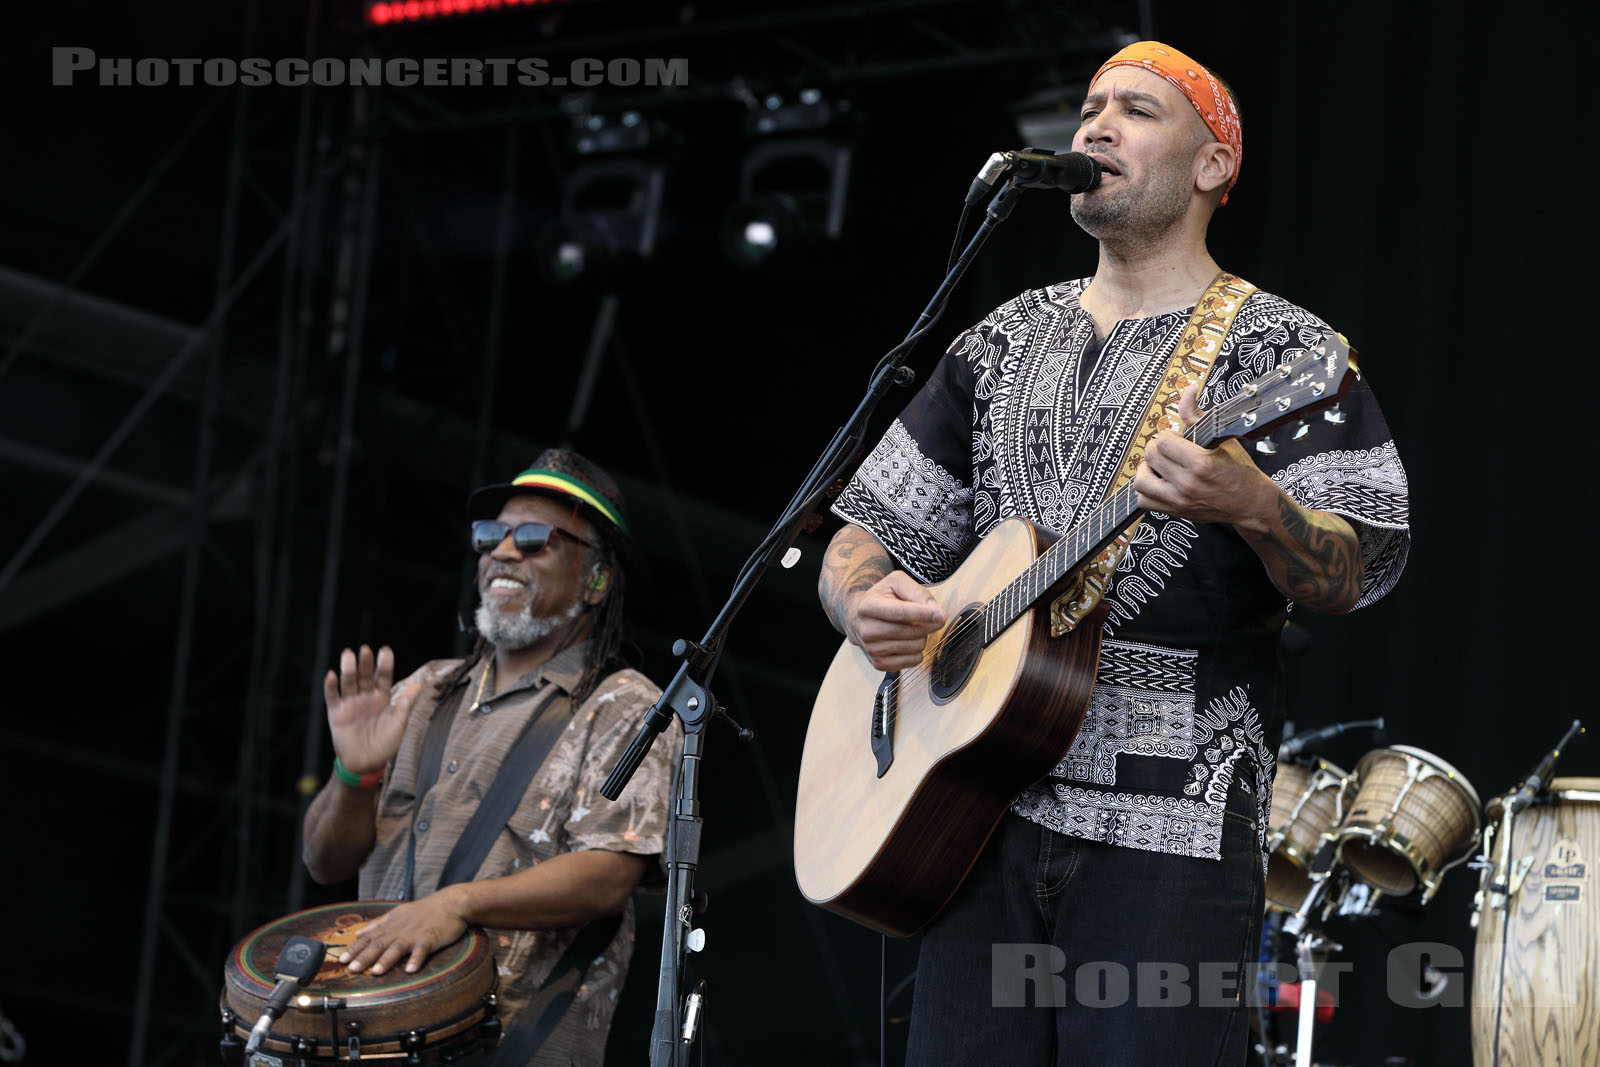 BEN HARPER AND THE INNOCENT CRIMINALS - 2019-07-21 - PARIS - Hippodrome de Longchamp - Main Stage 1